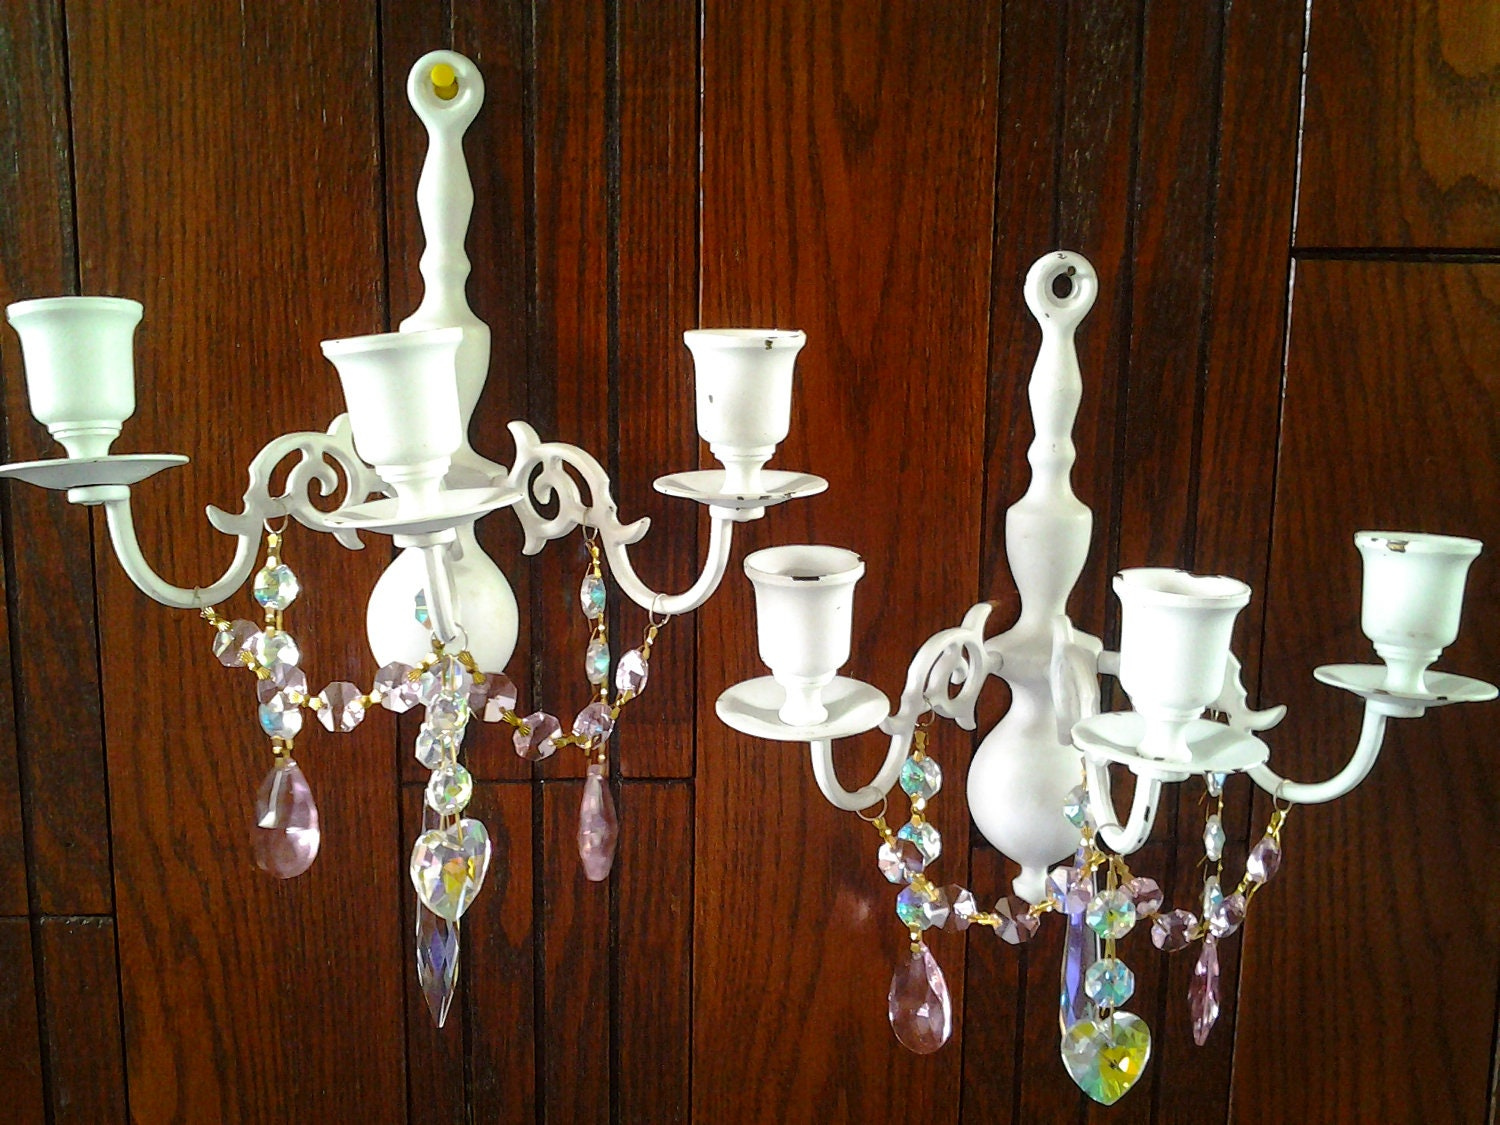 2 Candle Wall Sconces Shabby Chic Cottage Style Pale Aqua with